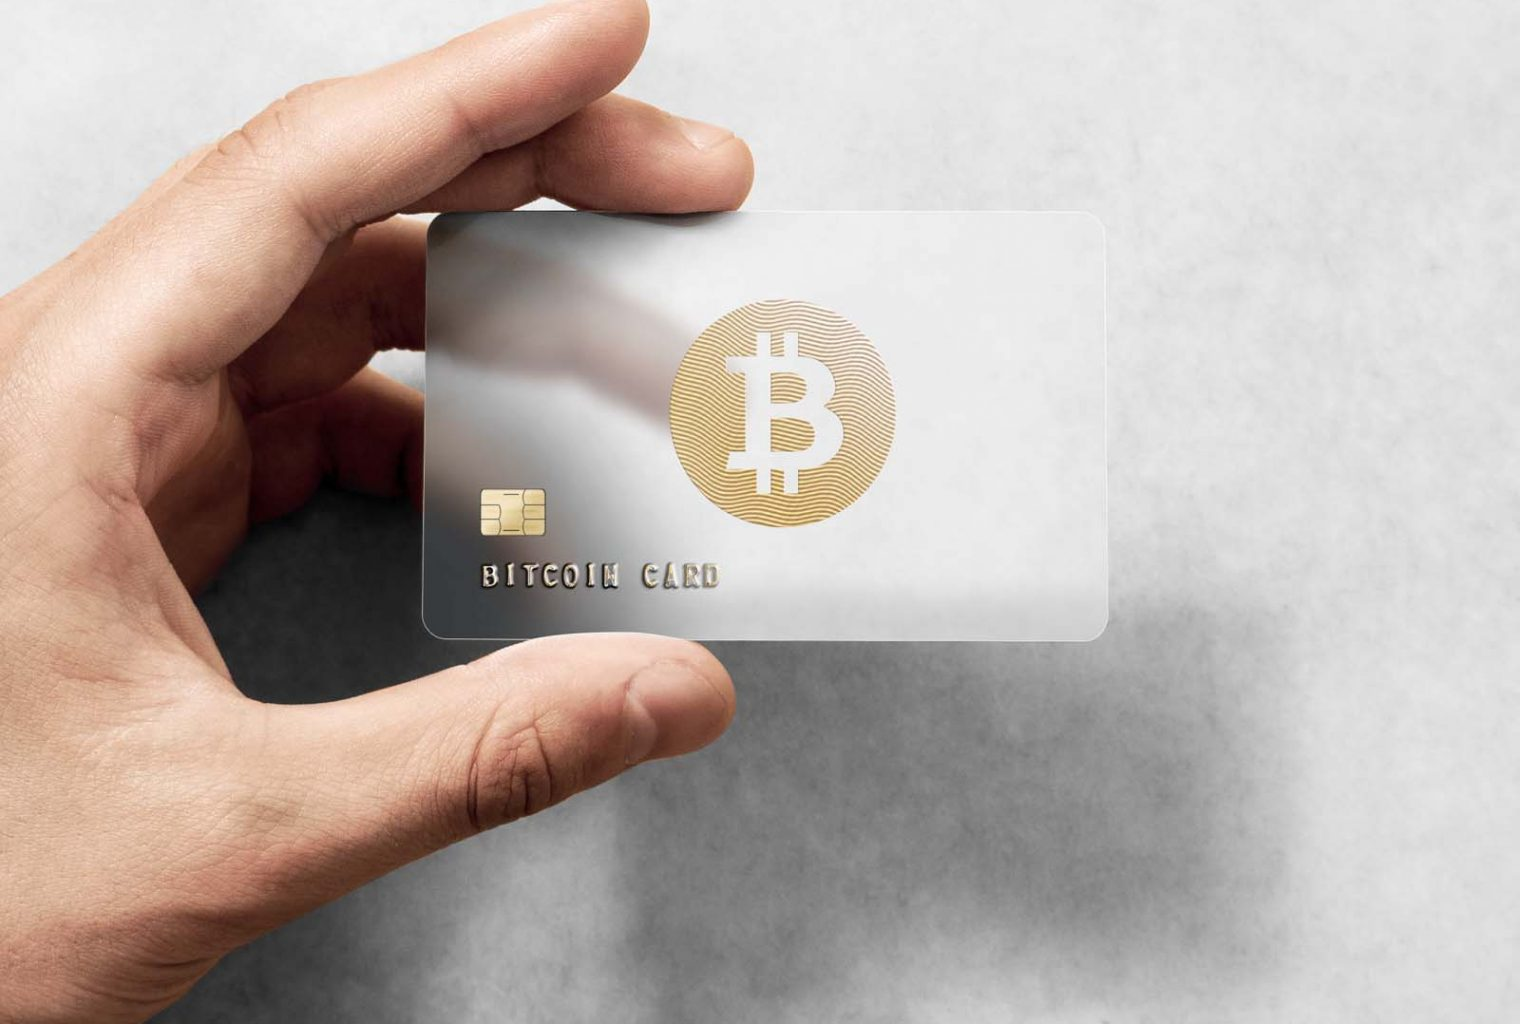 How to turn bitcoin into cash anonymously